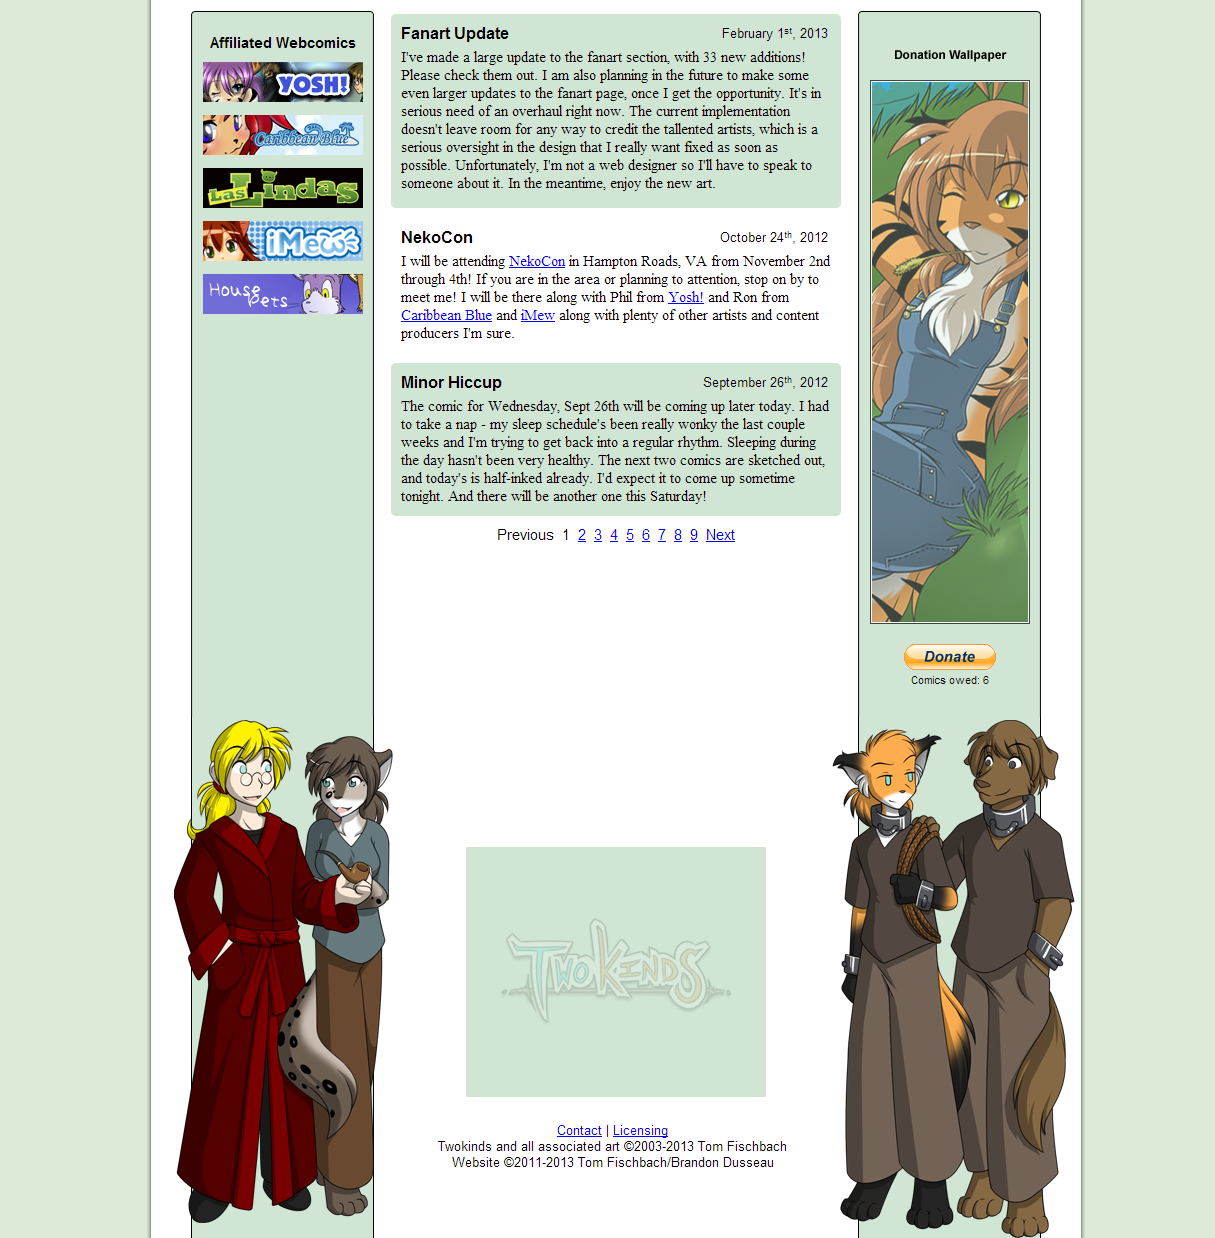 The website after a 2010 redesign, bottom half.